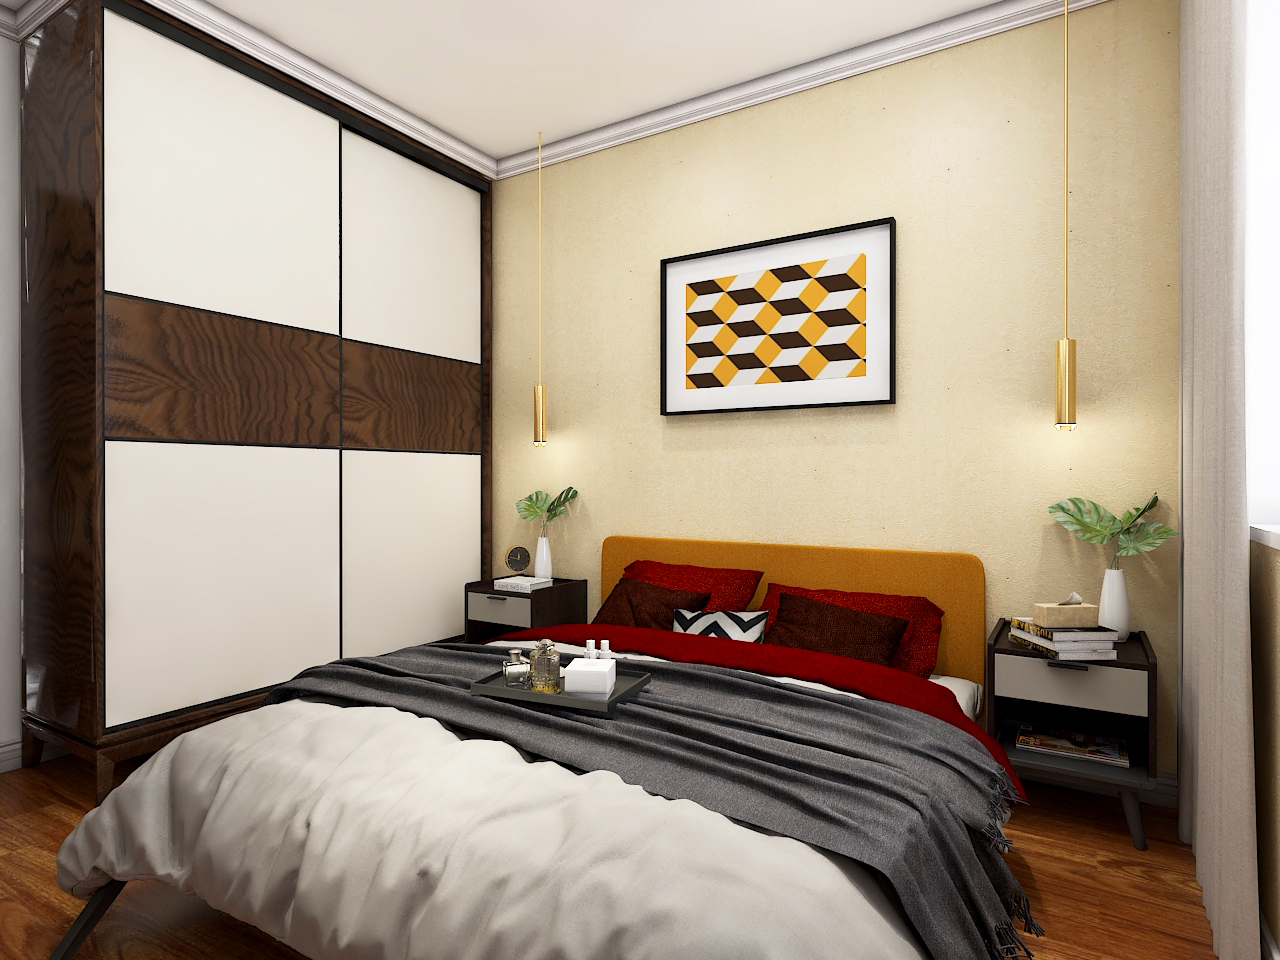 次卧 SECOND BEDROOM